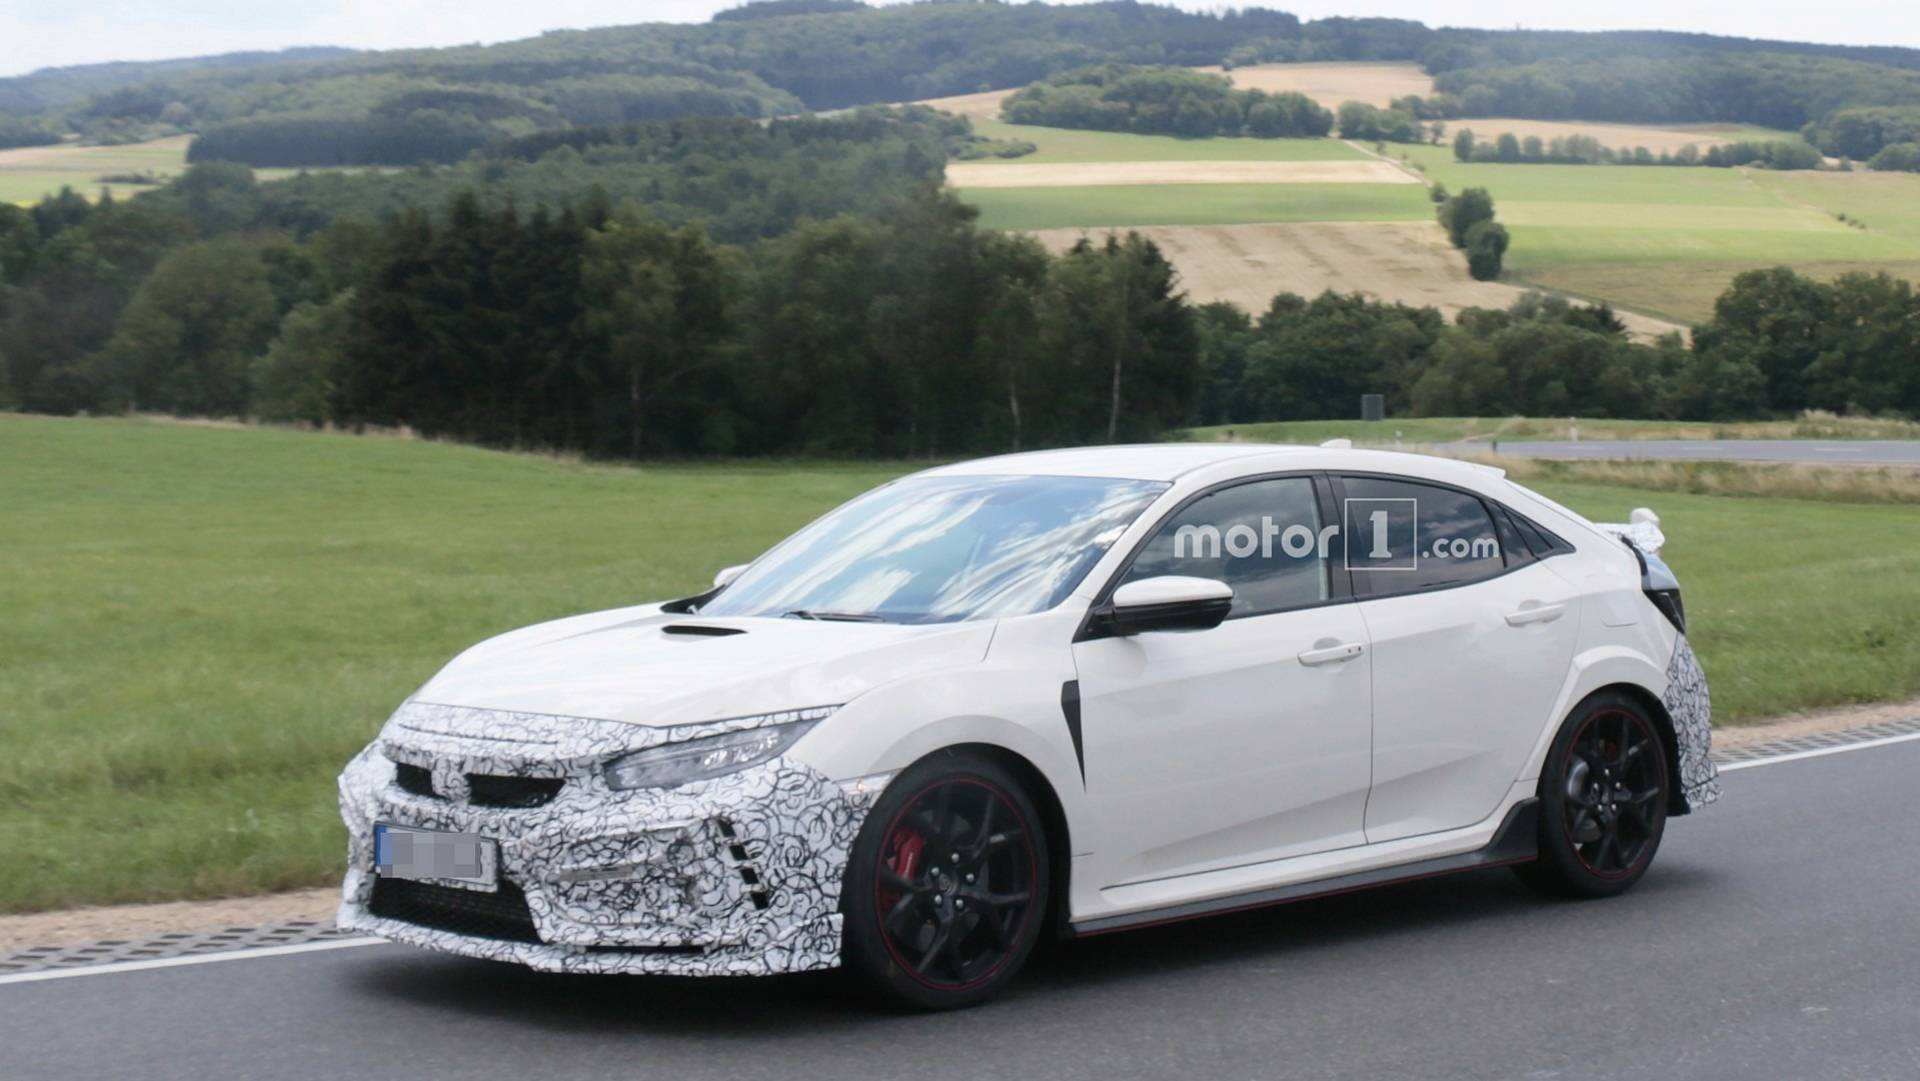 37 All New Honda Type R Automatic 2020 Concept And Review